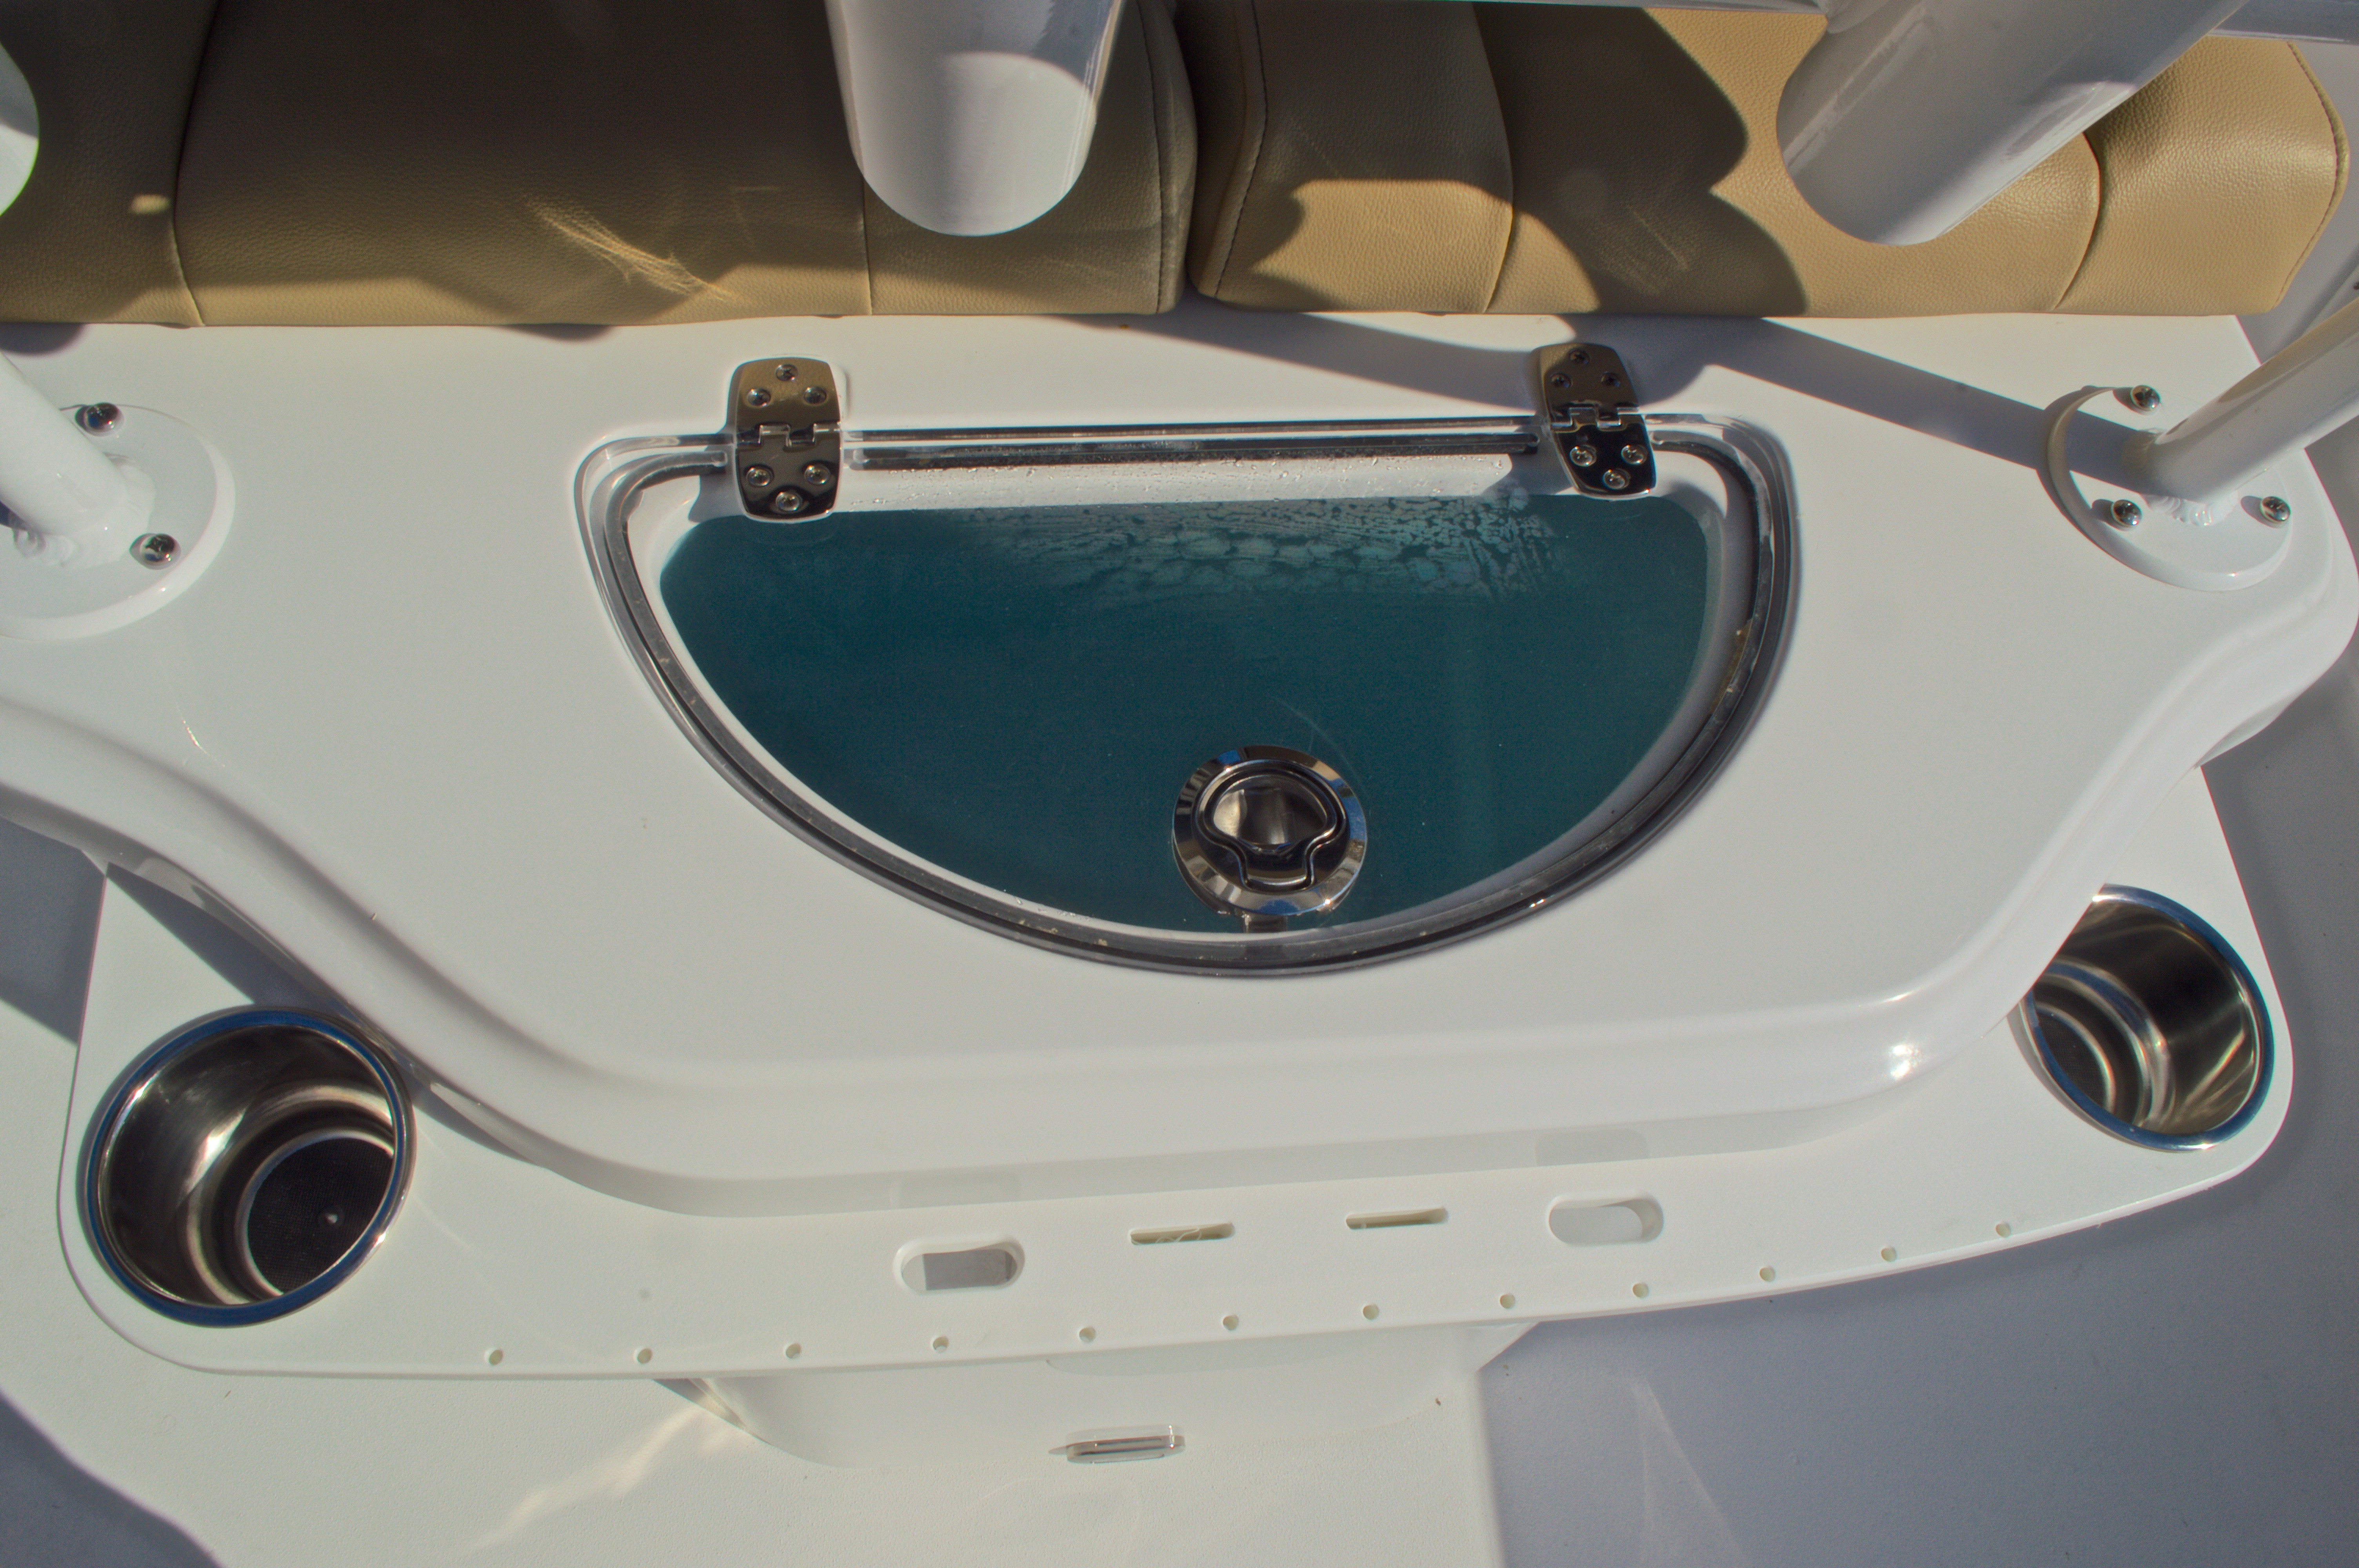 Thumbnail 18 for New 2016 Sportsman Heritage 251 Center Console boat for sale in West Palm Beach, FL